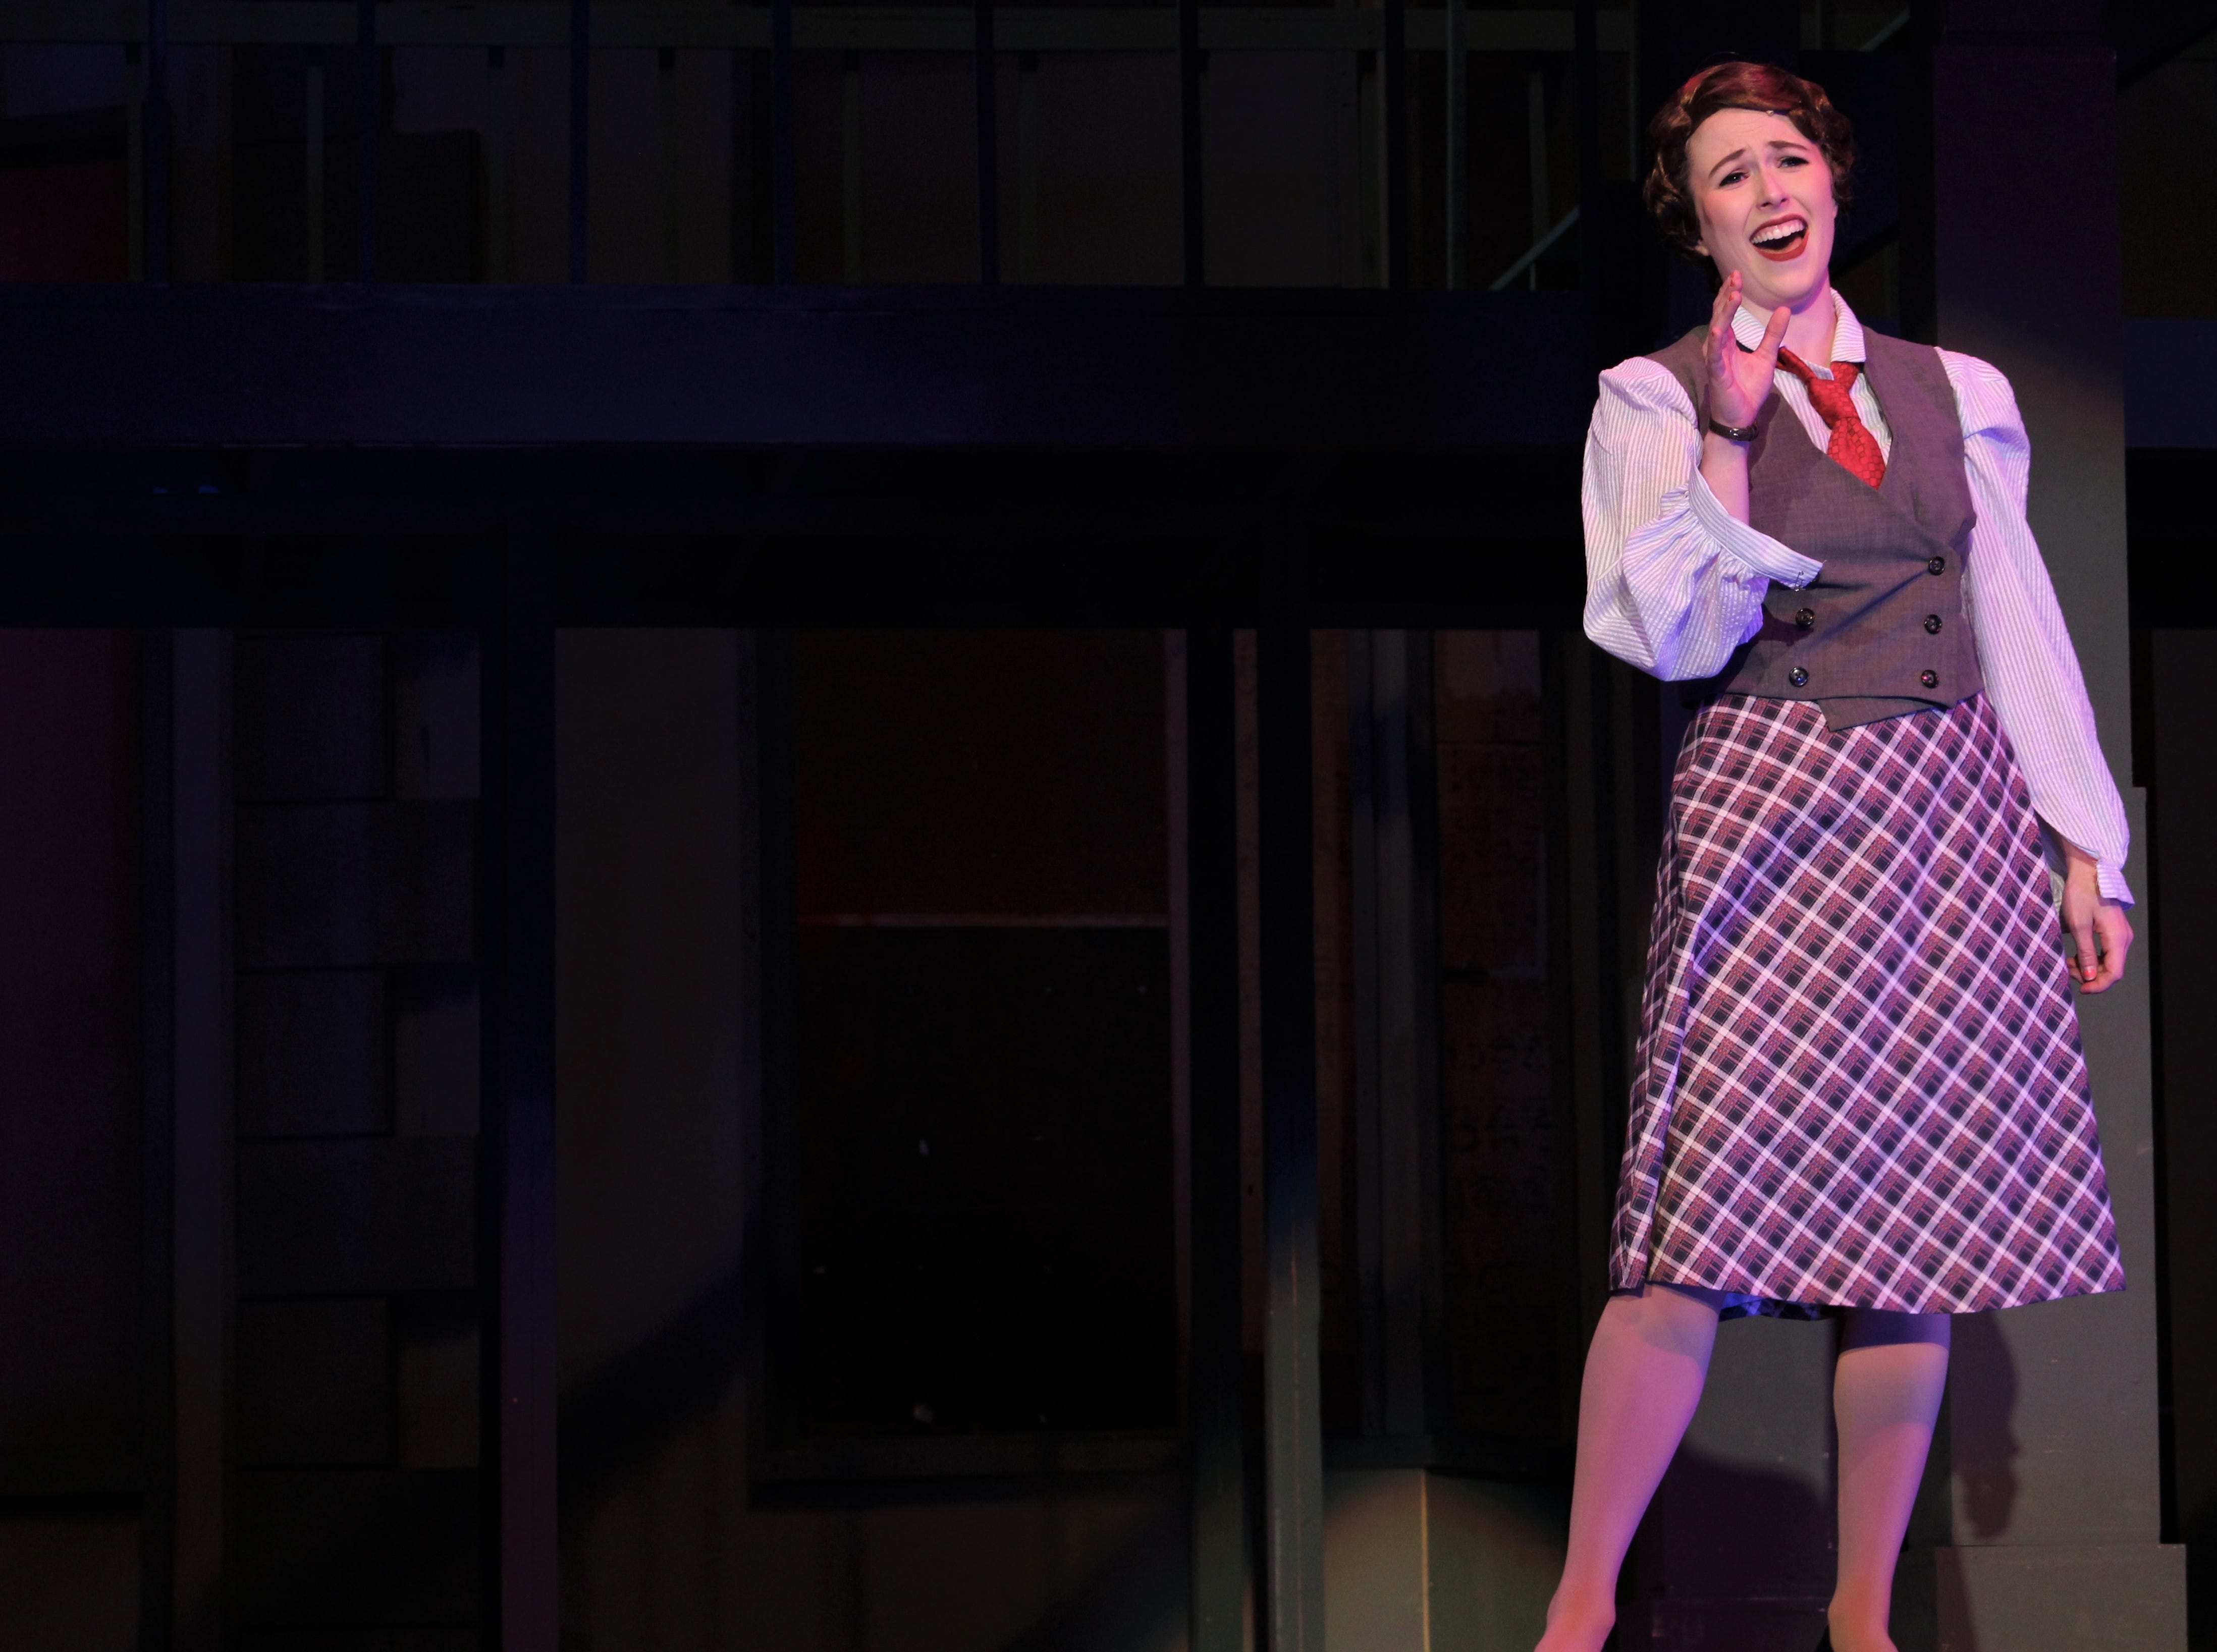 """While her sister Eileen seems to be a blonde magnet to guys, Ruth Sherwood (Payton Reeves) laments her bad luck in meeting men in """"One Hundred Easy Ways"""" in this rehearsal scene from """"Wonderful Town,"""" Abilene Christian's 2018 homecoming musical."""